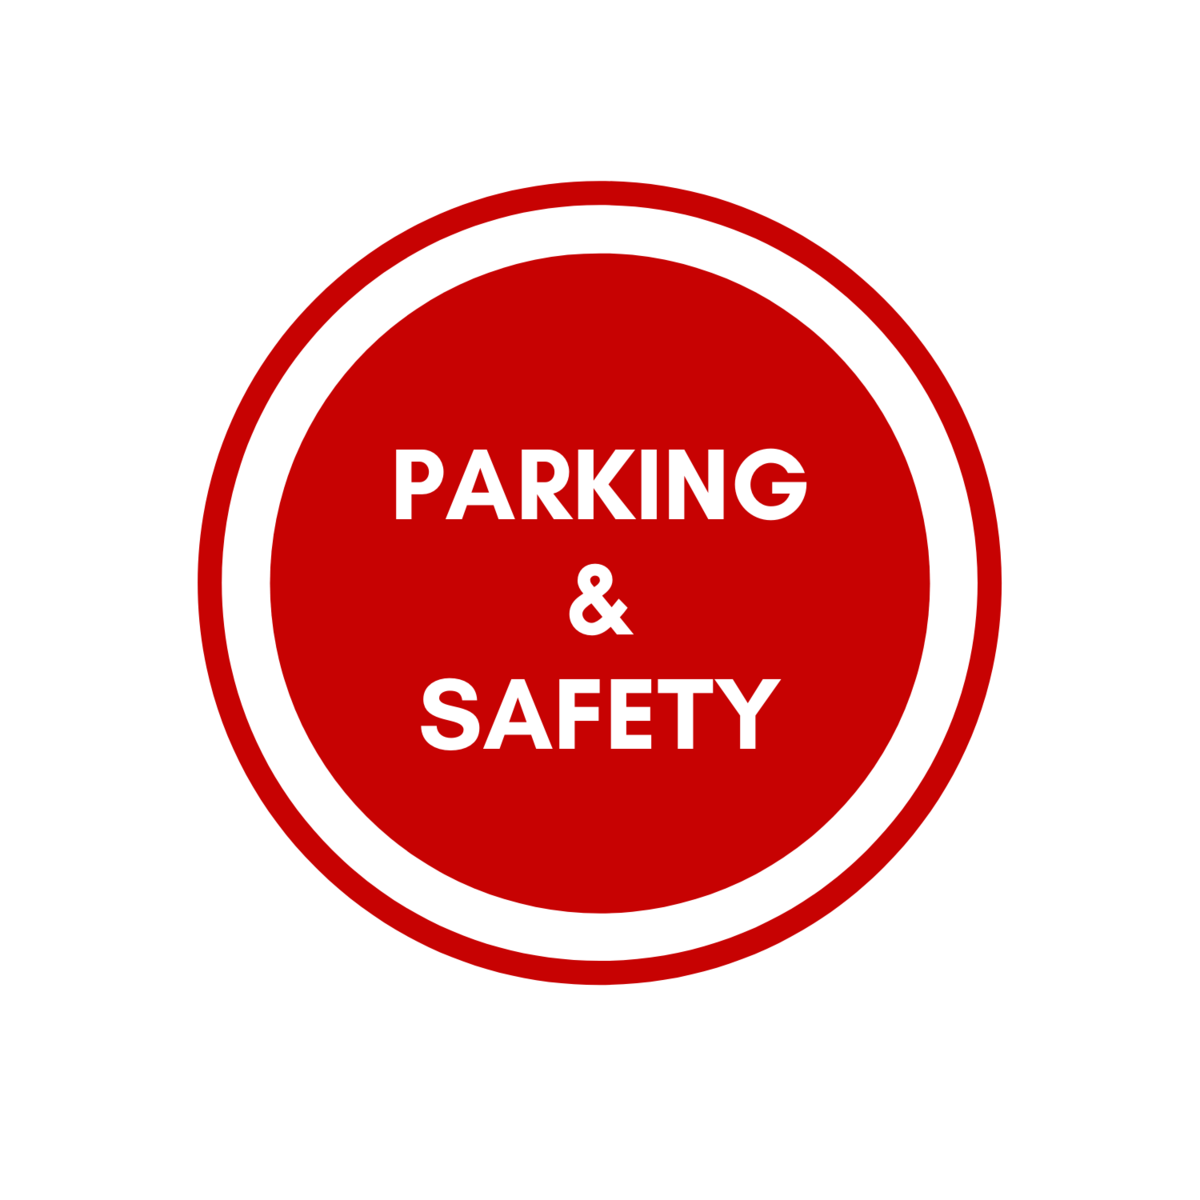 Parking and safety